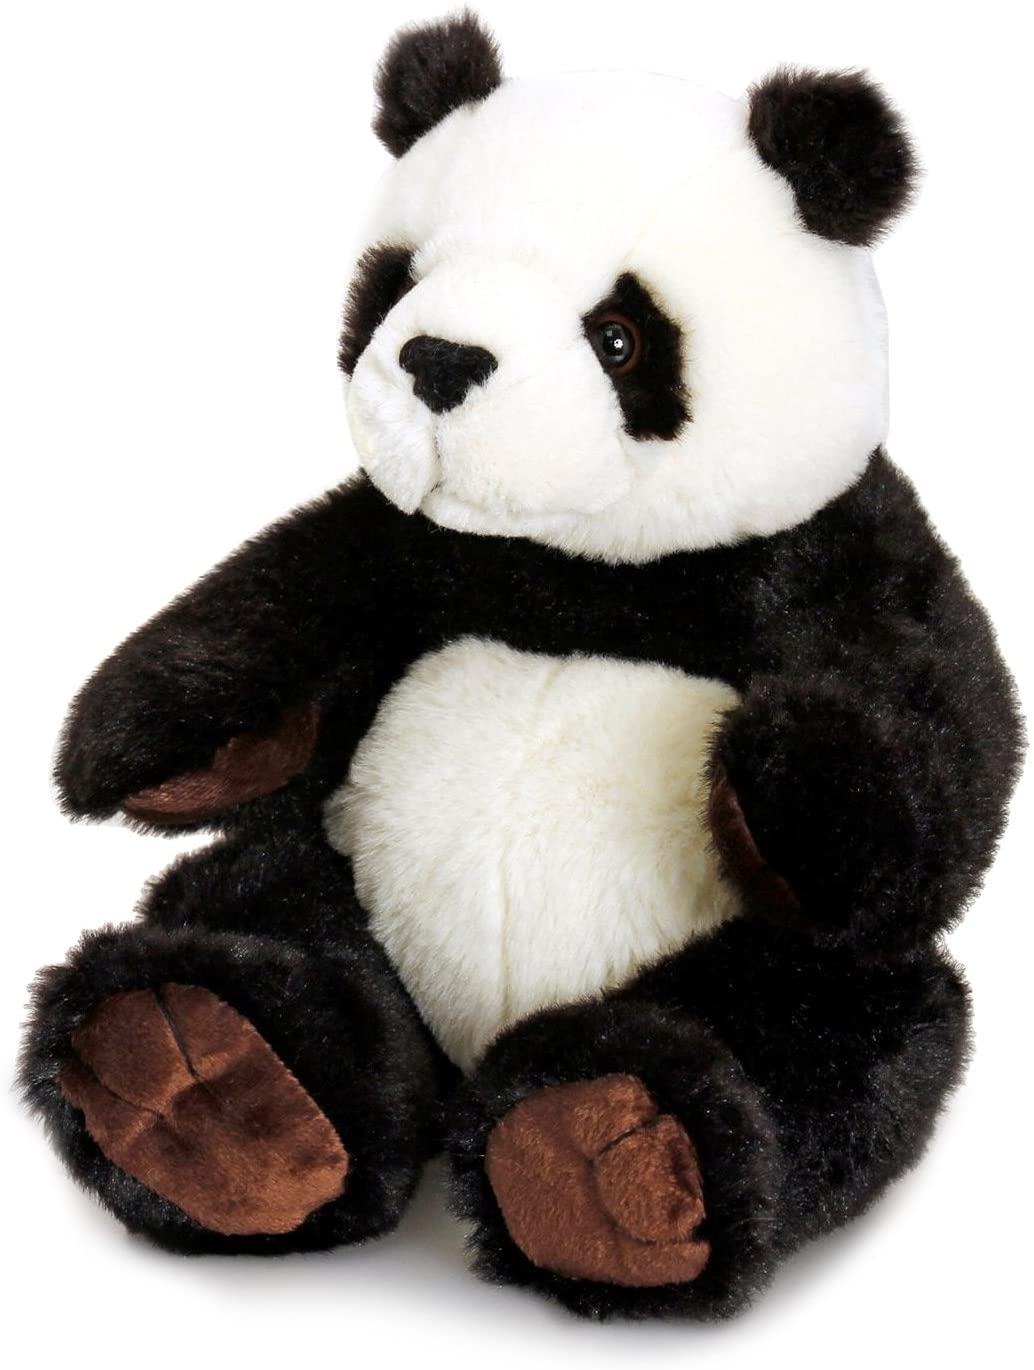 Beautiful Panda Plush Soft Toy by Keel Toys